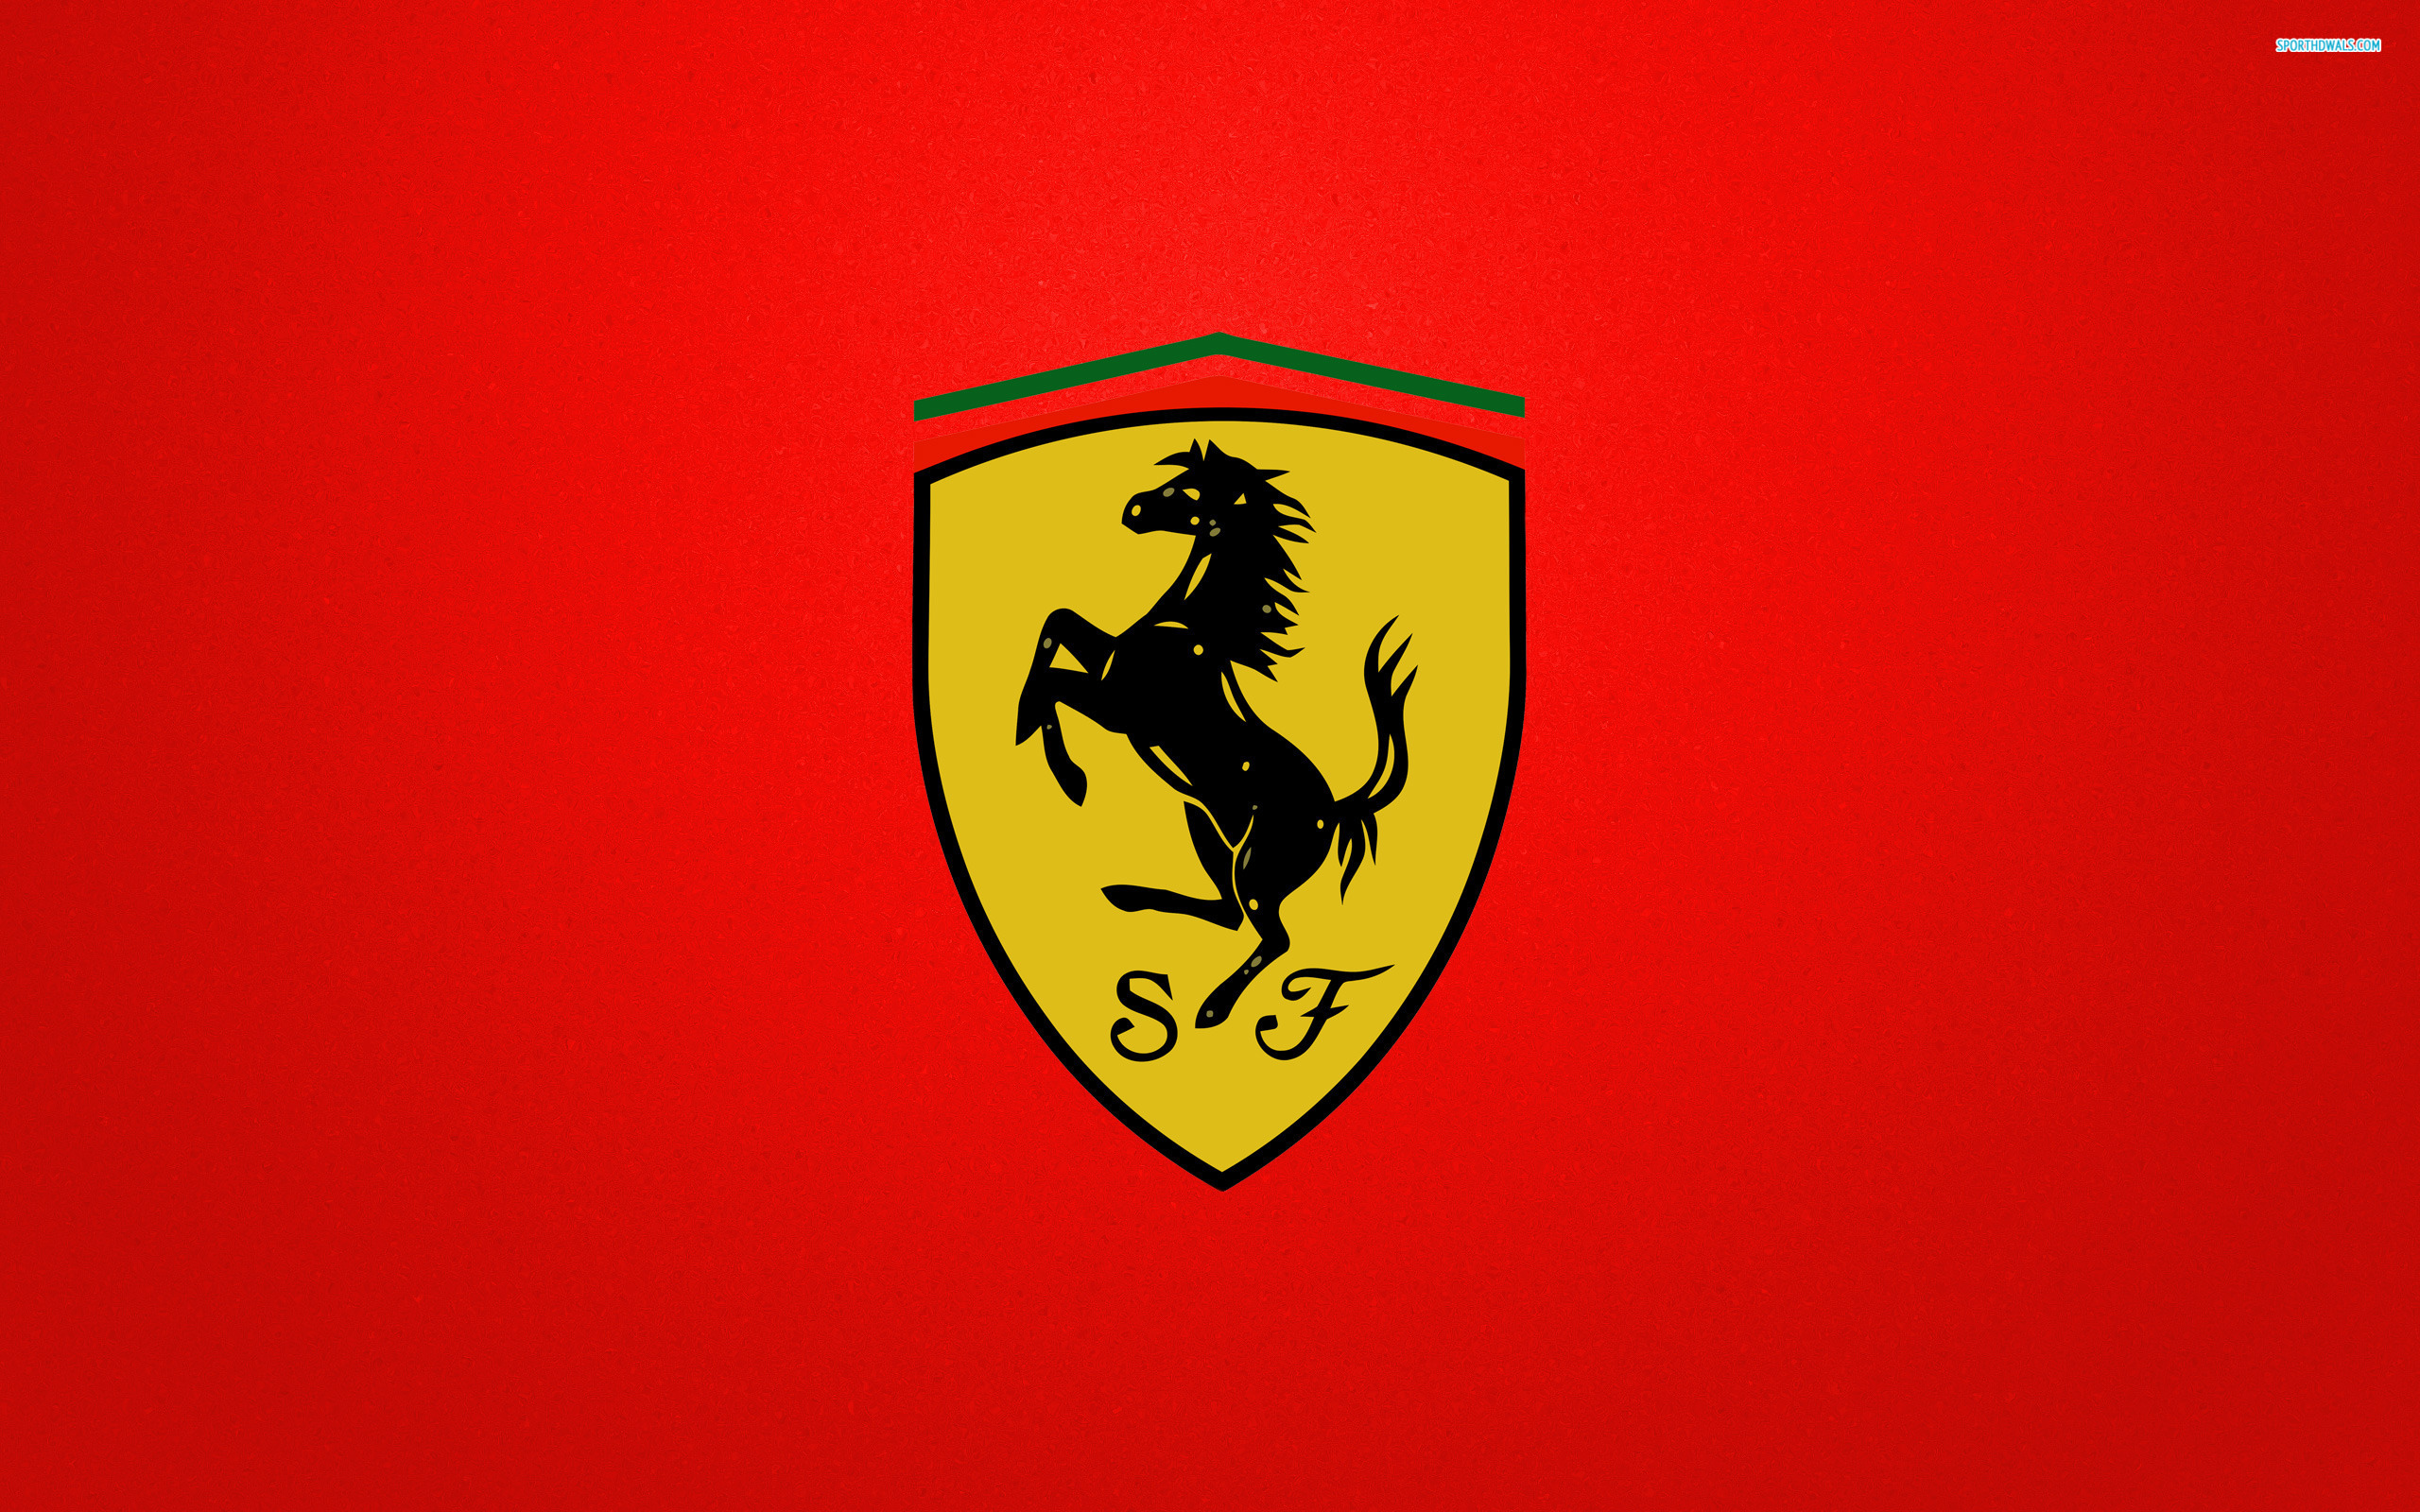 Ferrari Logo Wallpapers Archives Page 2 Of 2 Hd